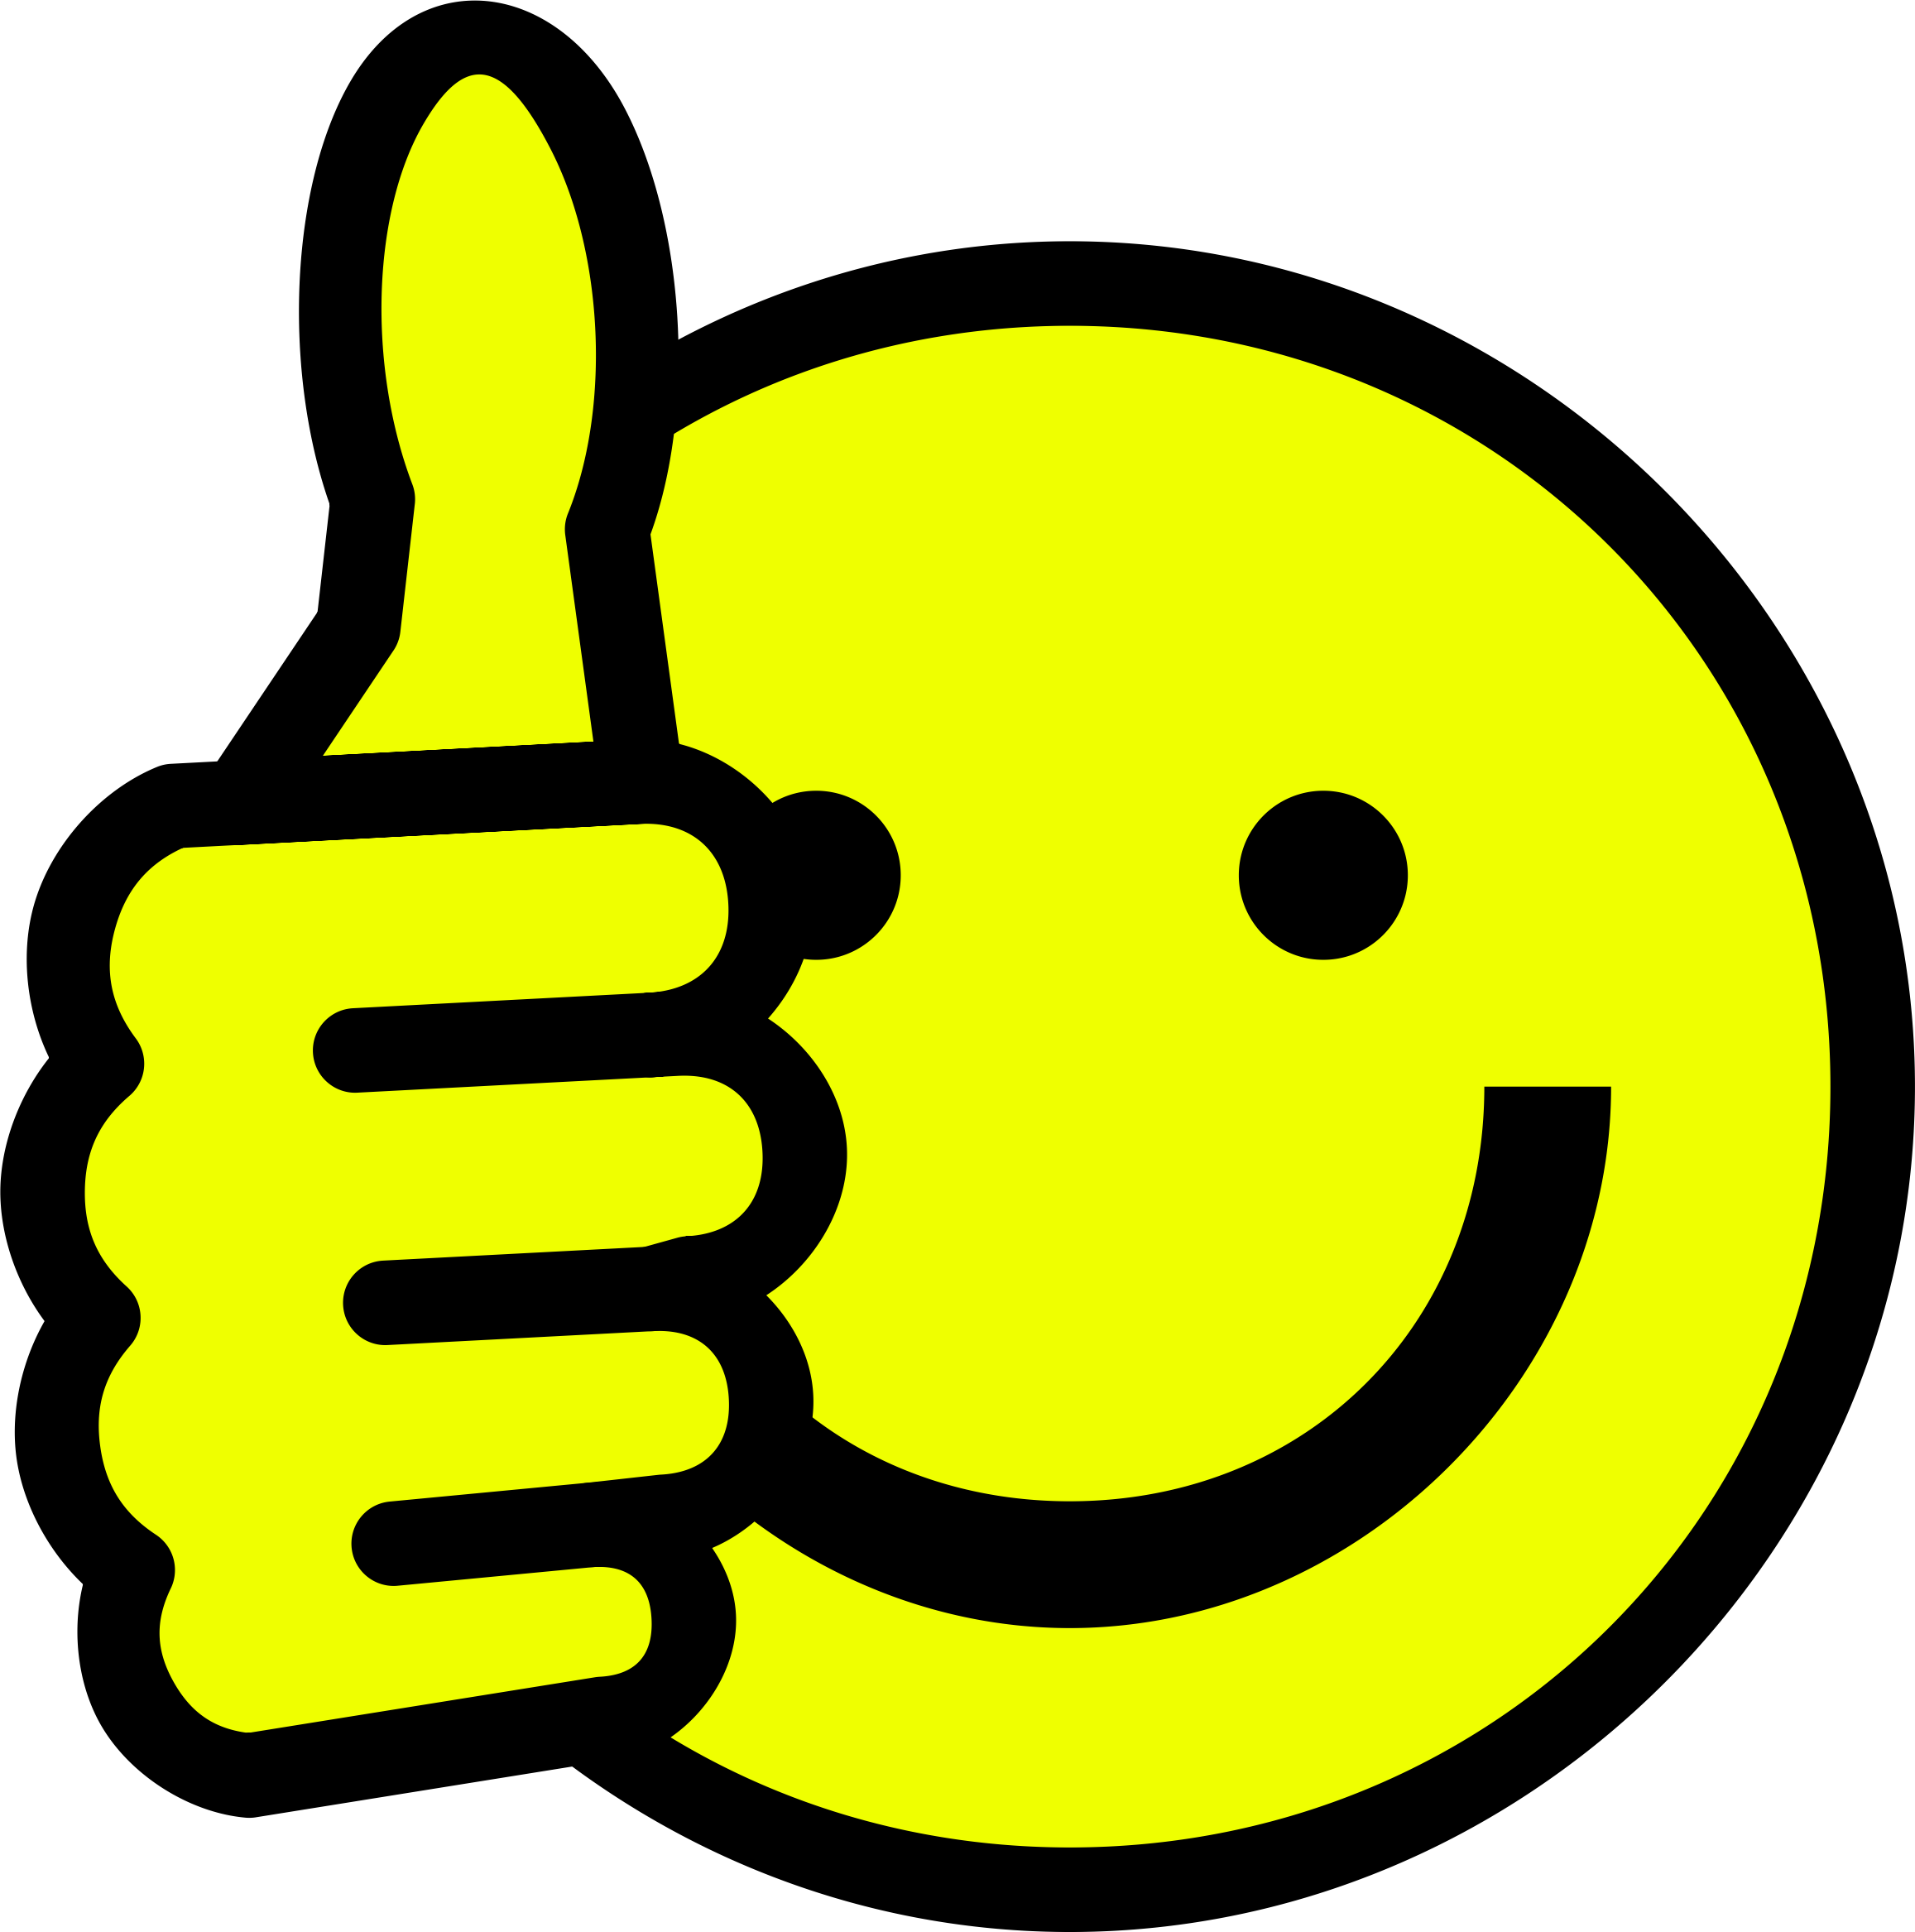 Clipart thumbs up smiley face clipart freeuse Clipart - Thumbs up smiley clipart freeuse